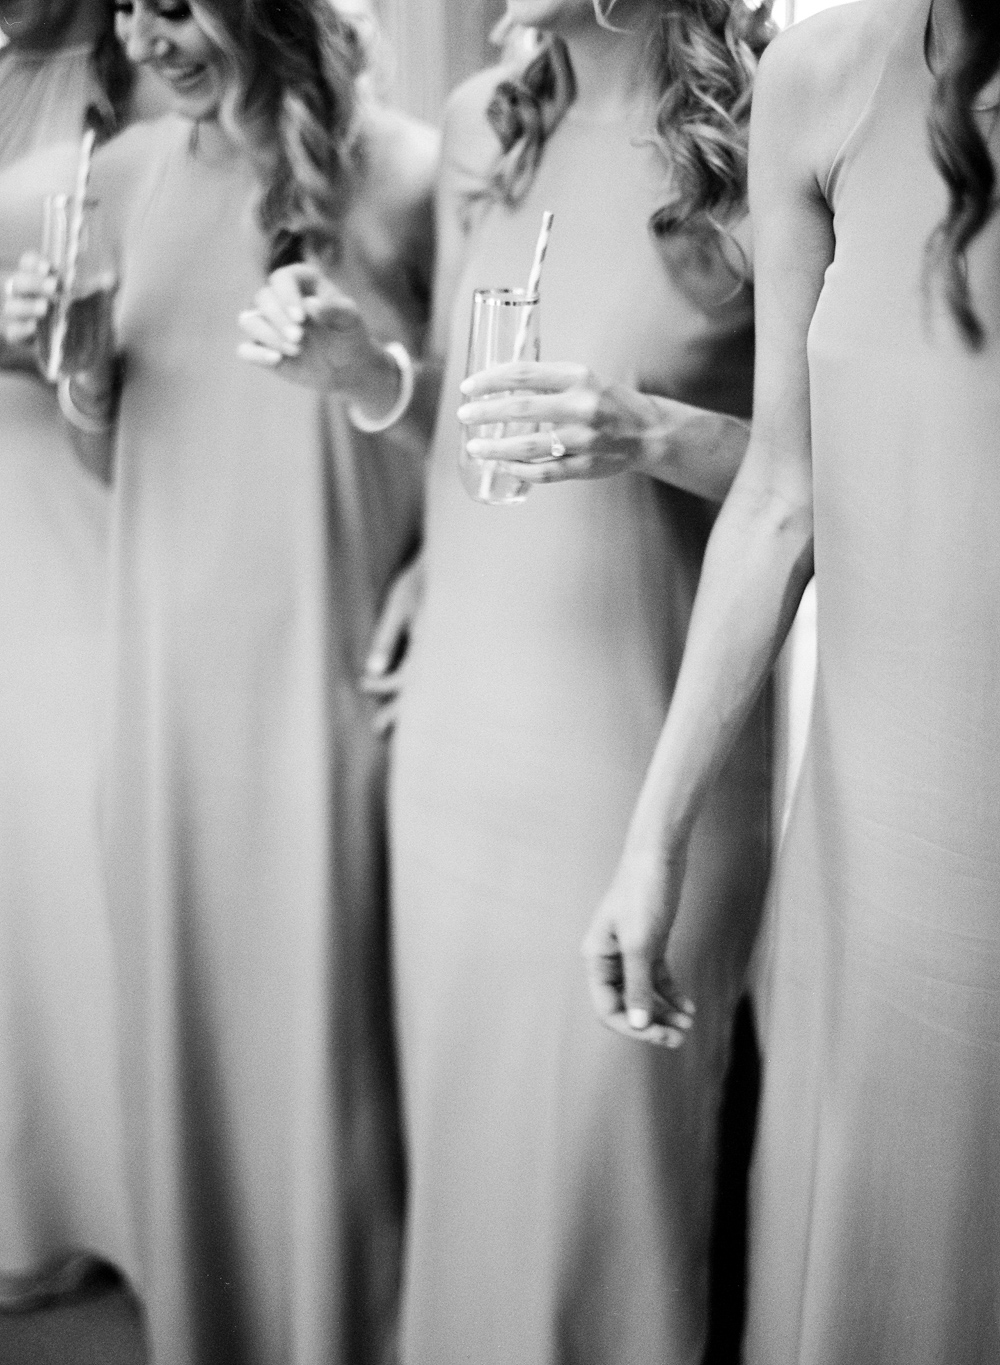 004-pelicanhill_wedding_ashleykelemen.jpg